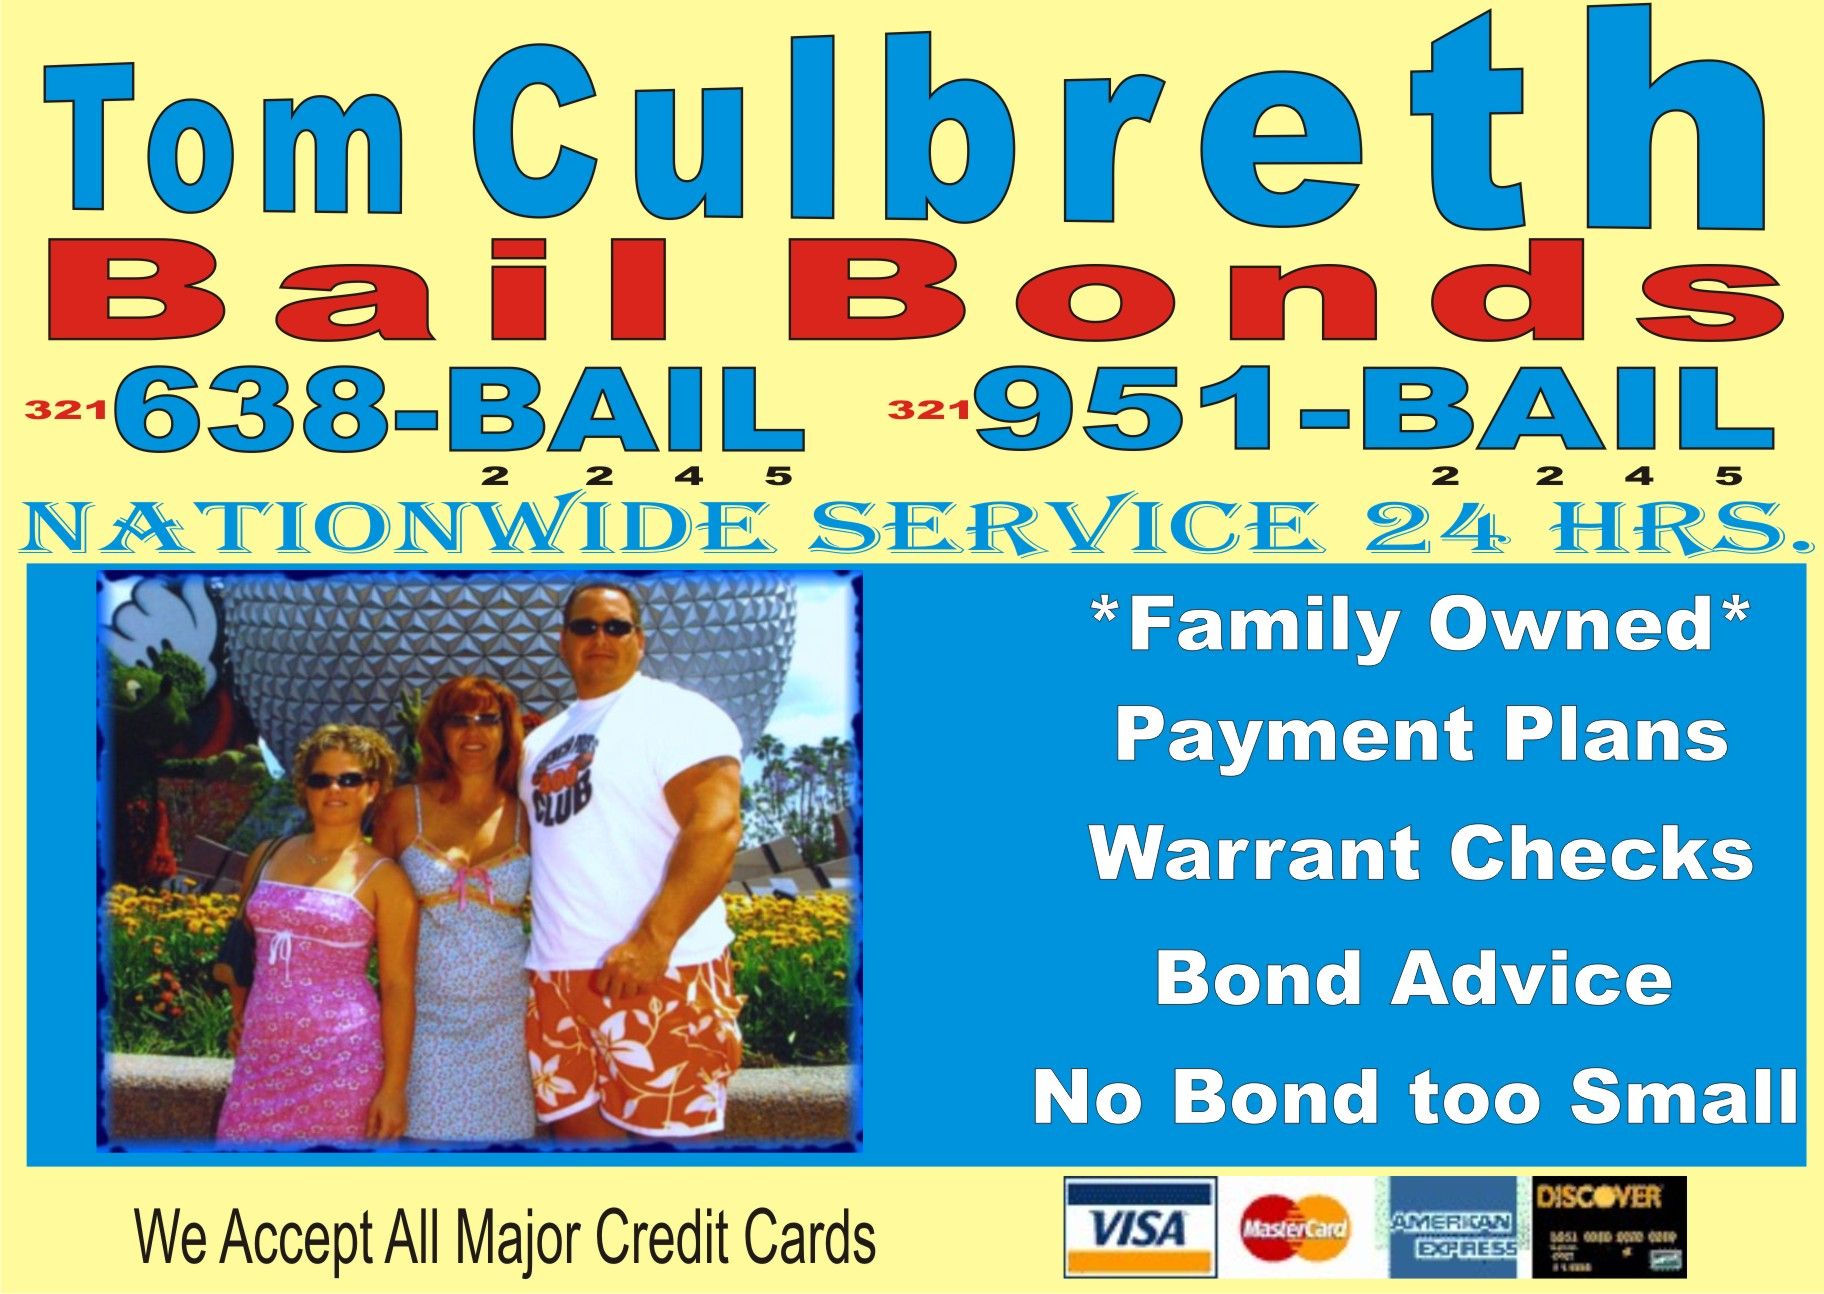 Brevard County Bail Bond Agency